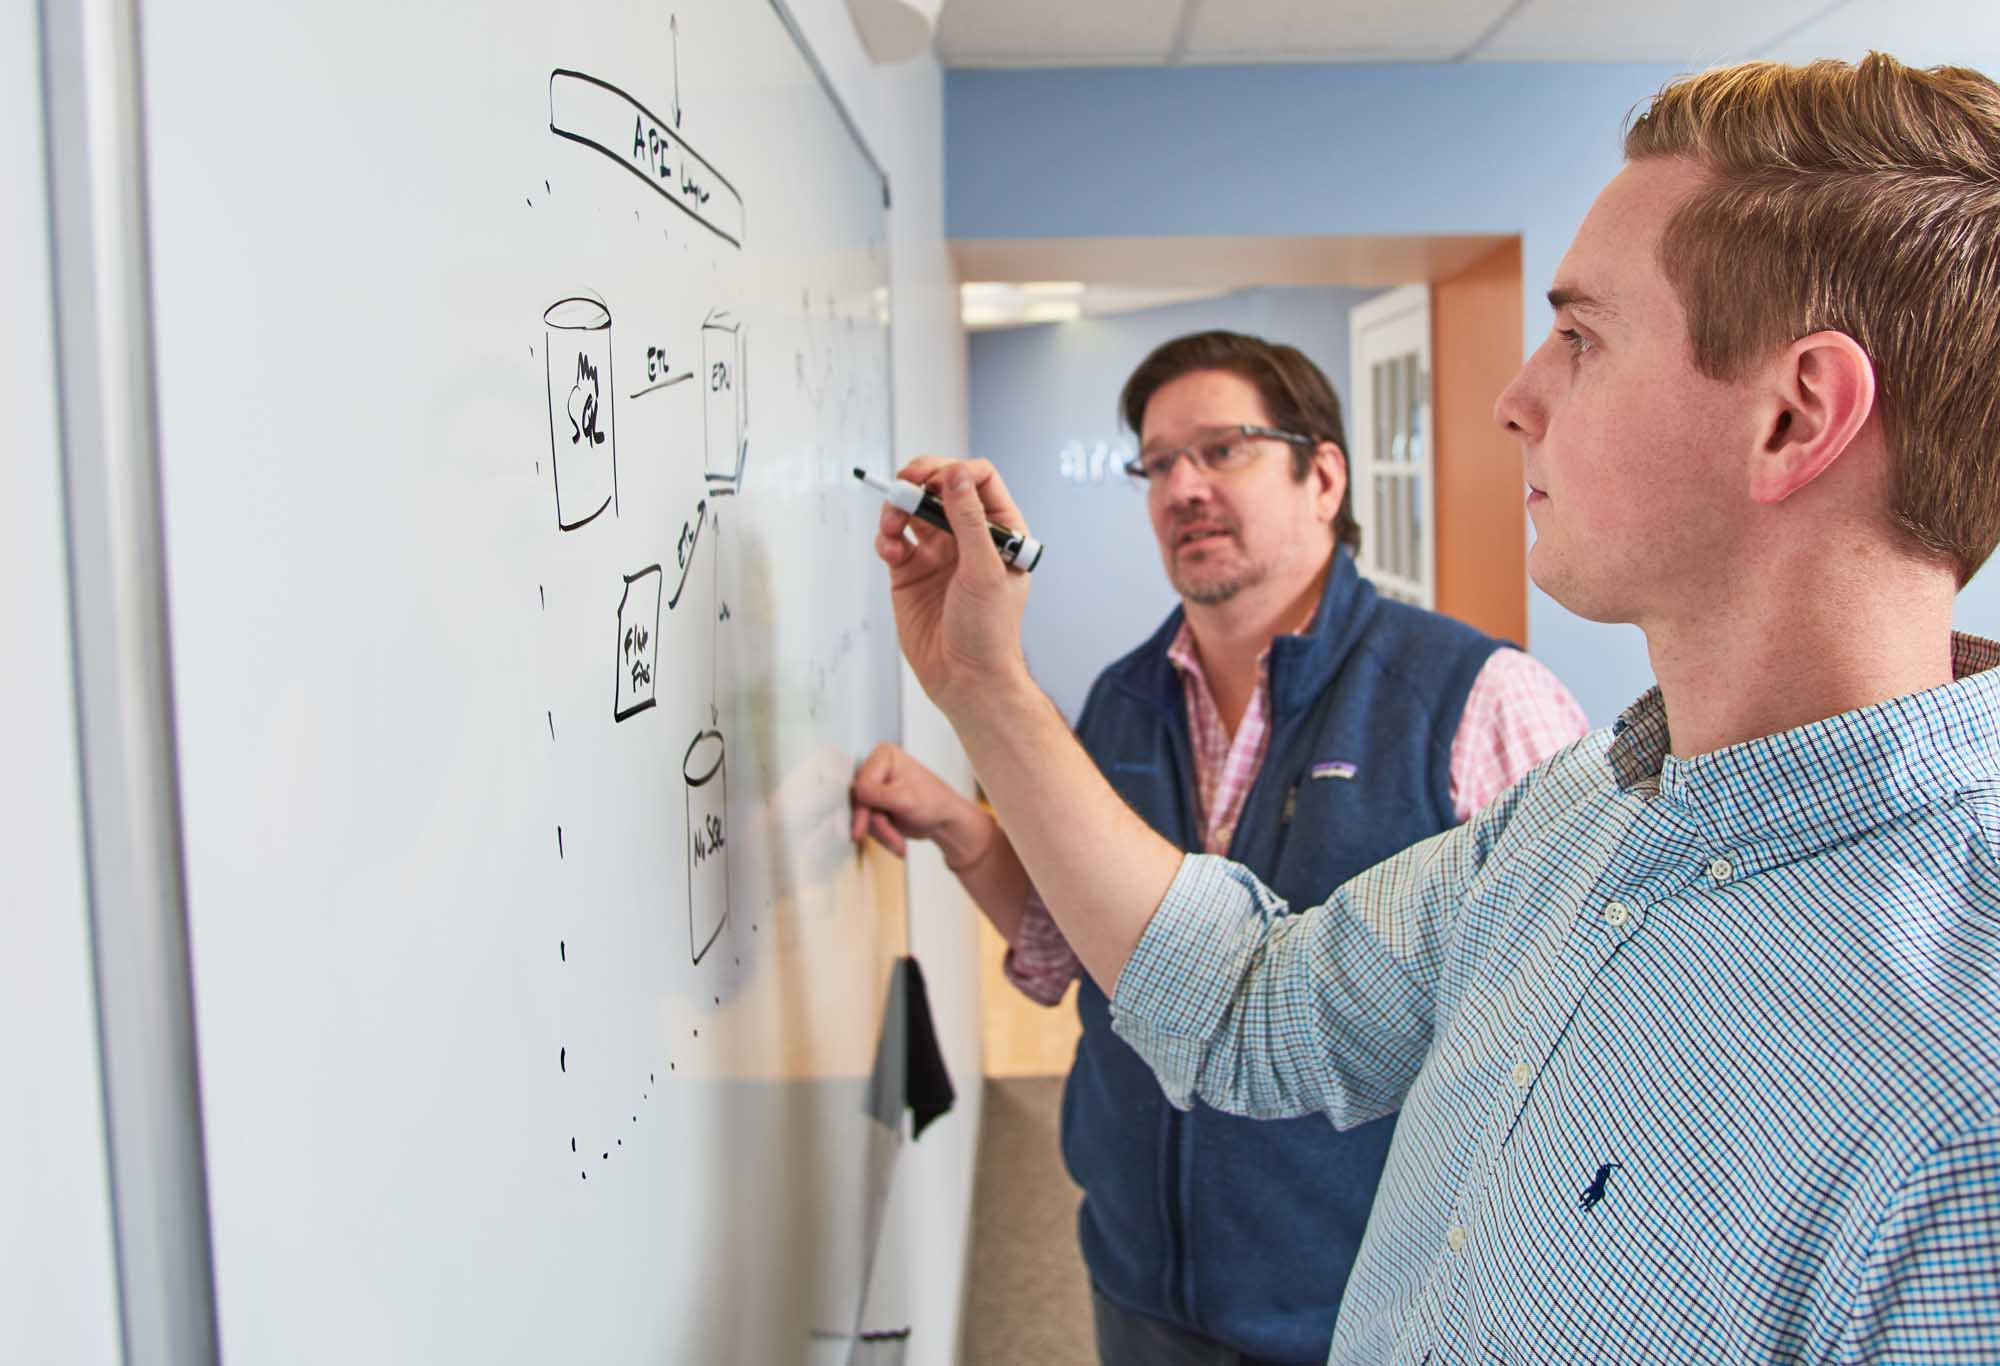 candid corporate lifestyle photography:Working it out on the white board